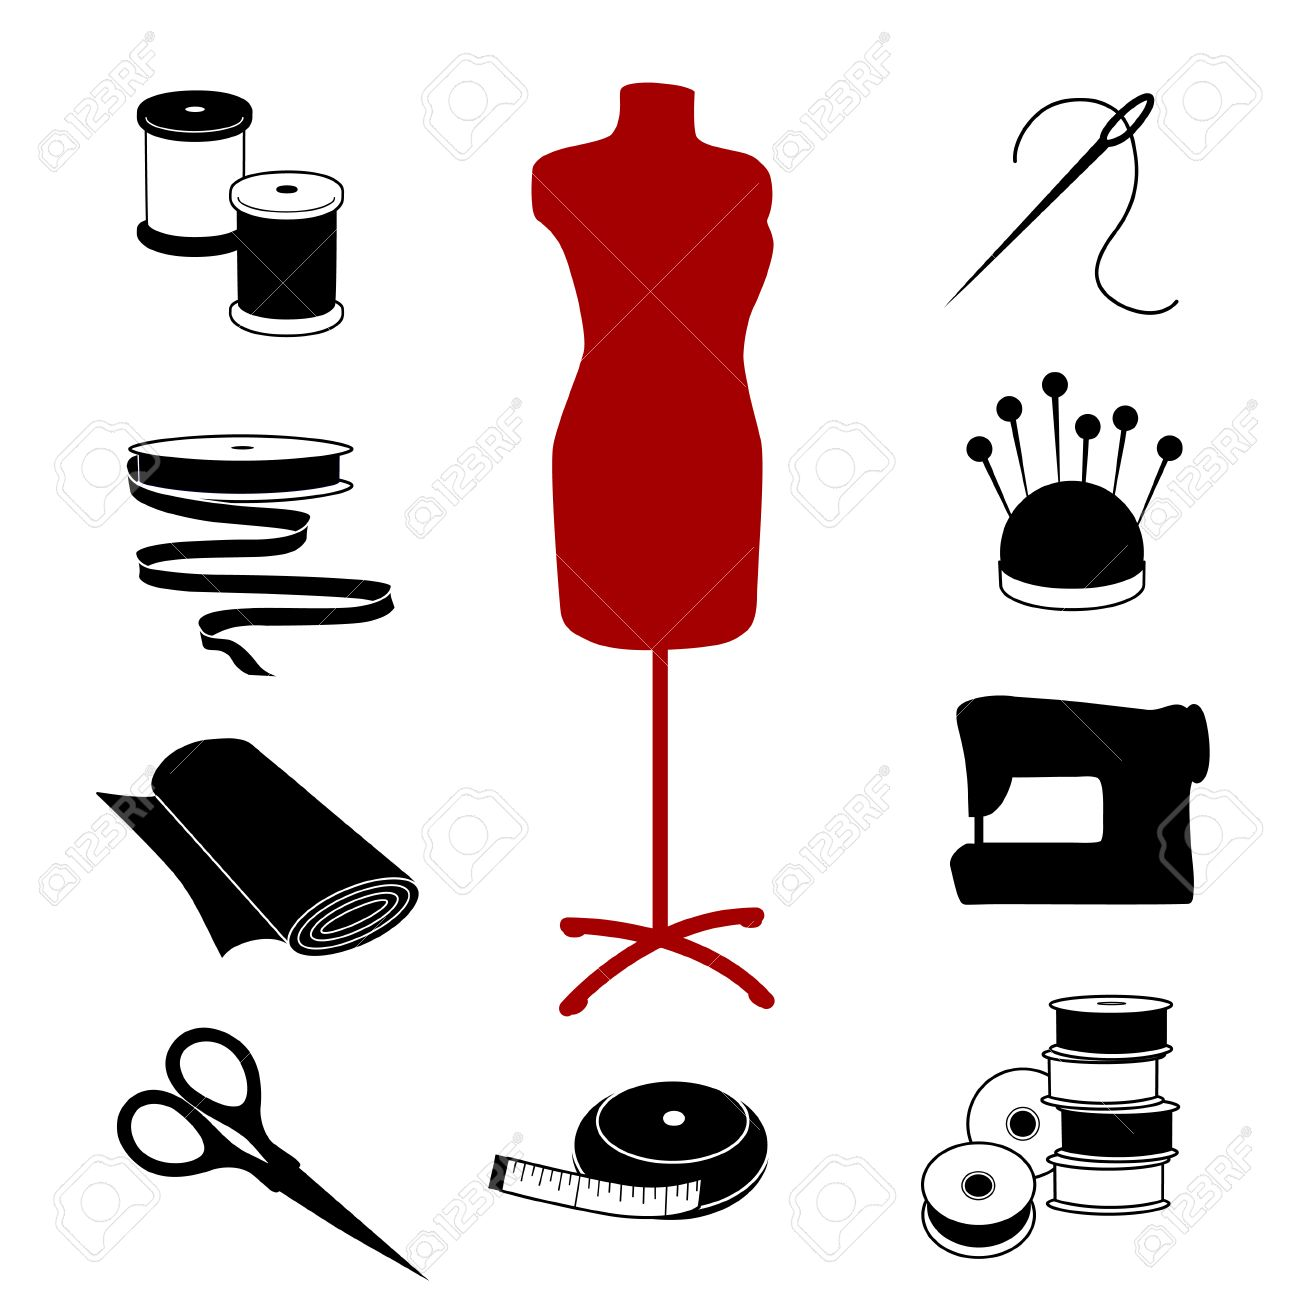 Crafts Black And White Design Sewing Tailoring Icons Fashion Model Tools Supplies For